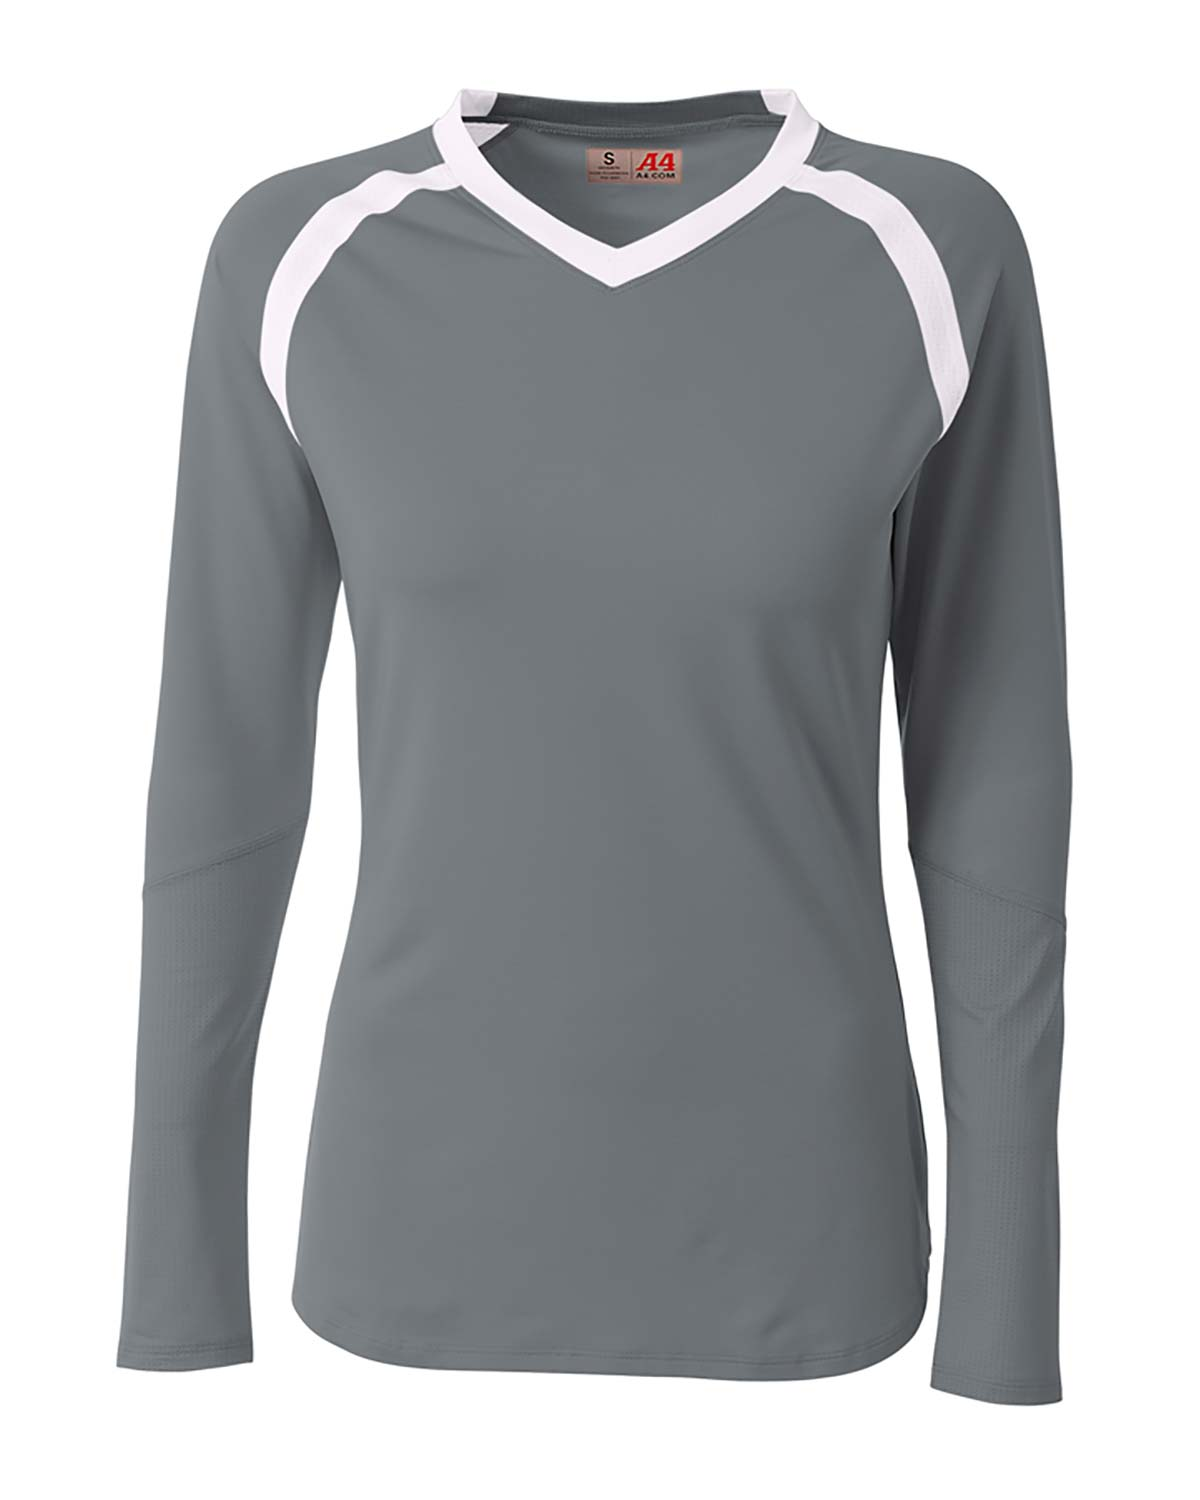 A4 NW3020 Ace Long Sleeve Volleyball Jersey